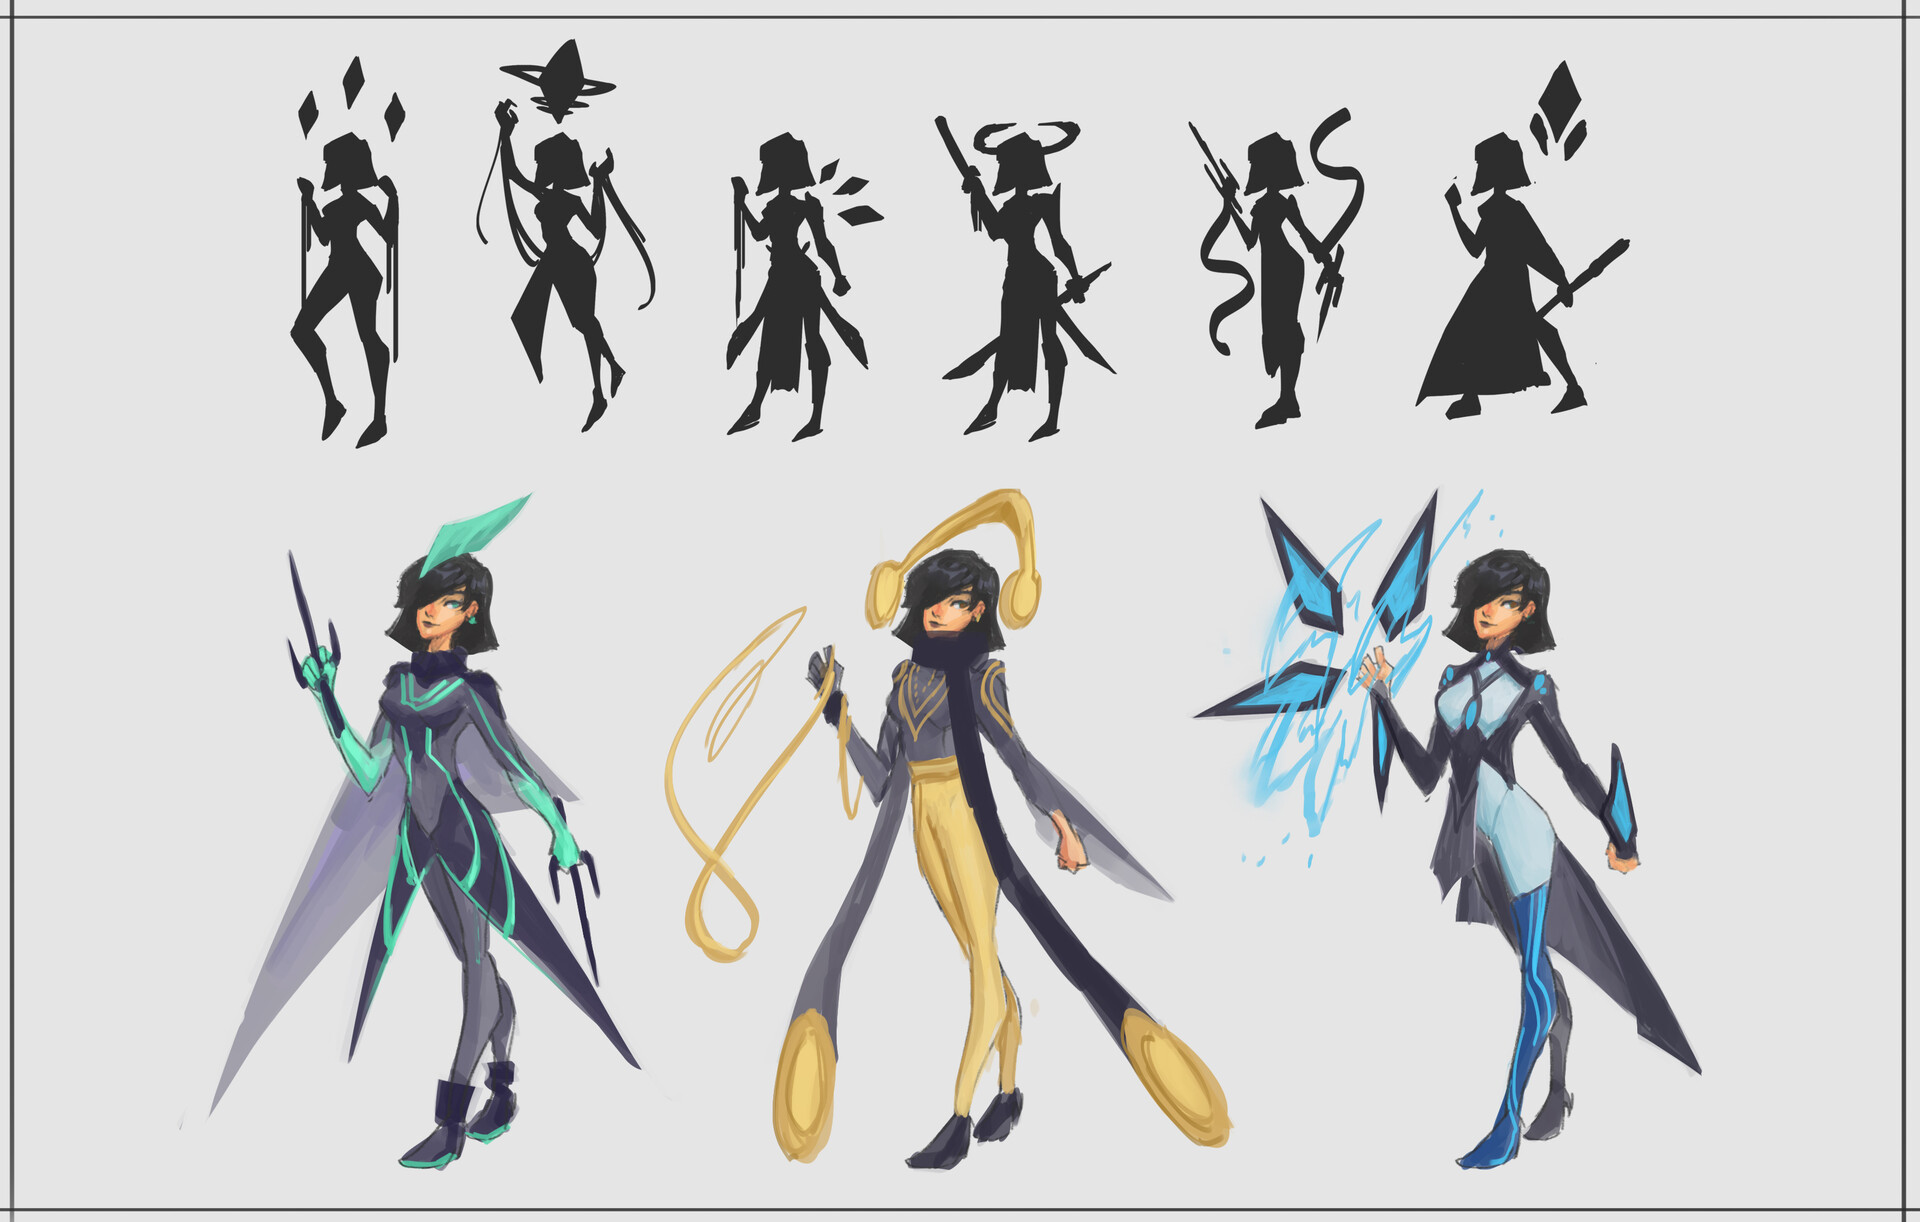 Initial Kae concepts. Liked the gold and black color, so went to explore that some more